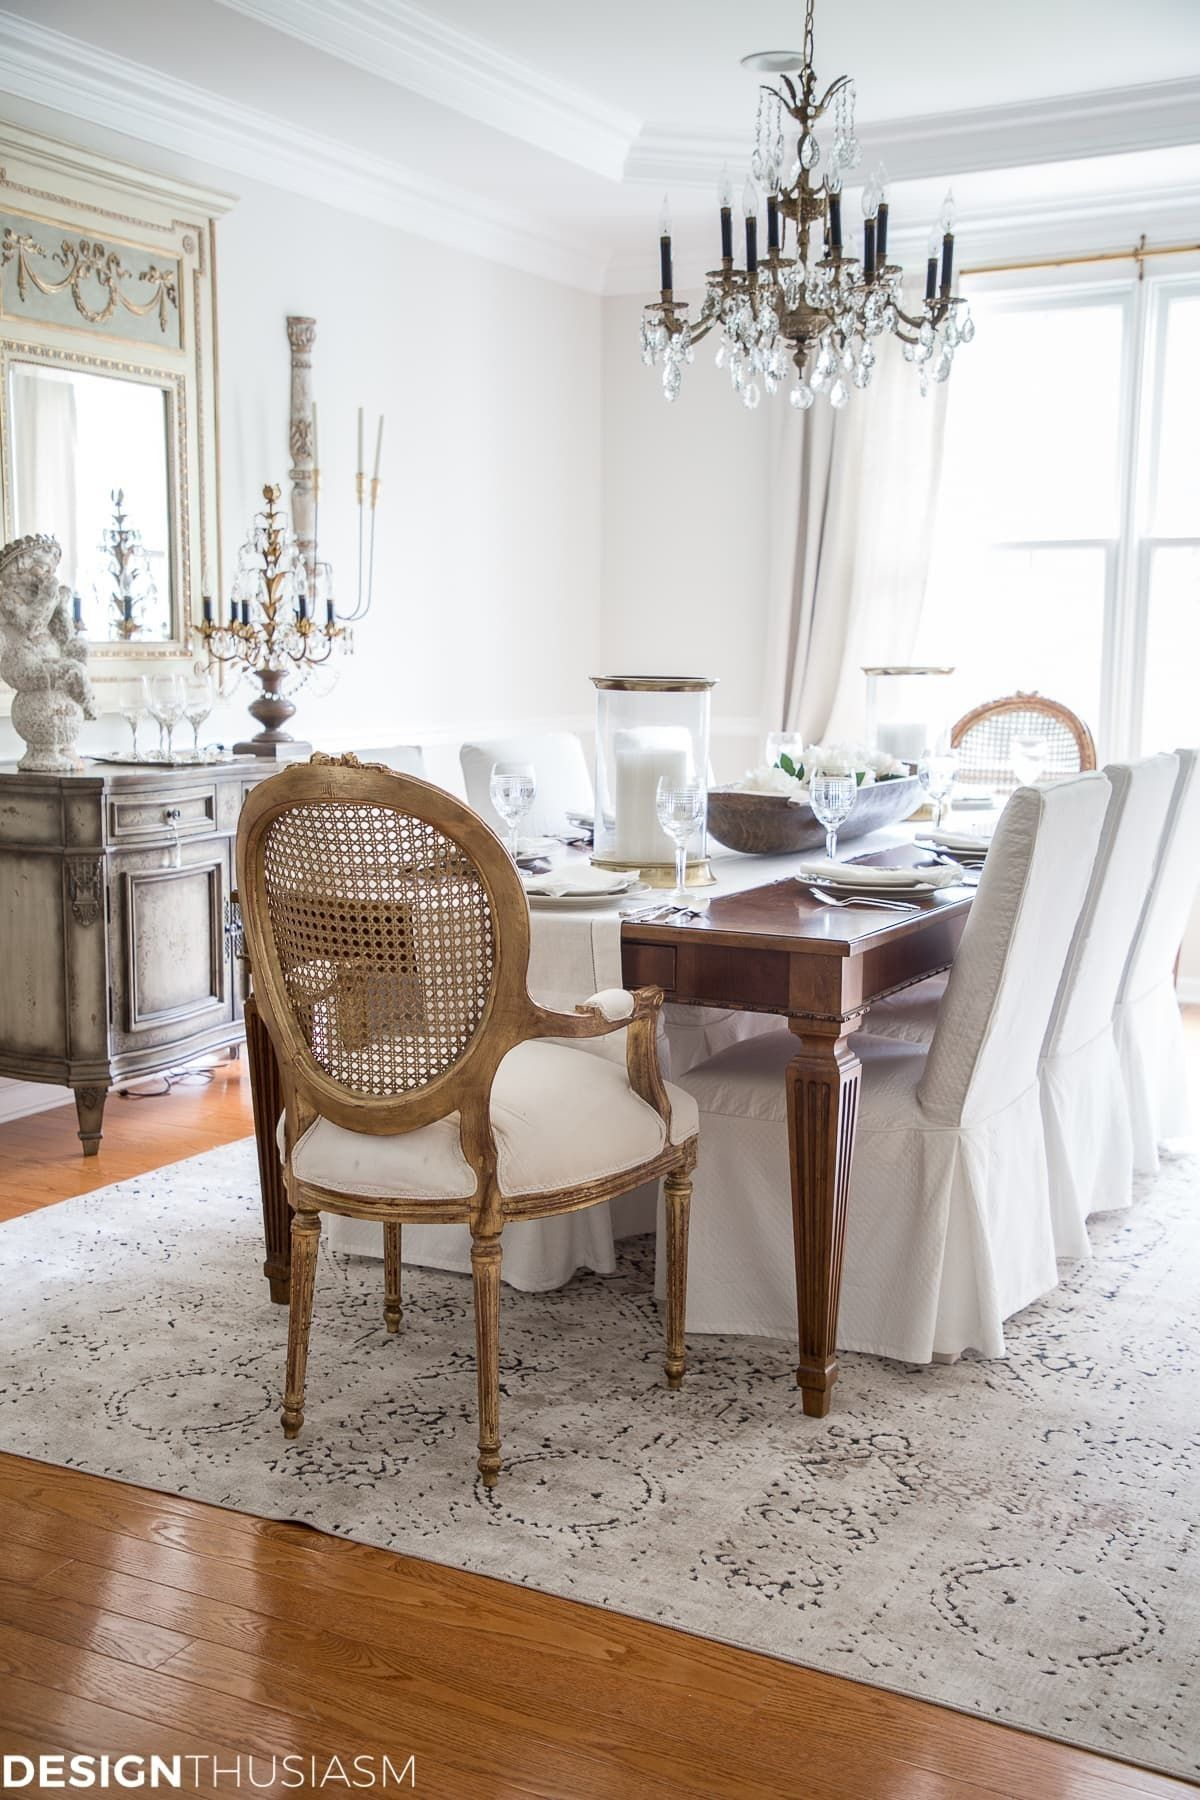 Fancy French Country Dining Room Table Decor Ideas In 2020 French Country Living Room French Country Dining Room Country House Decor